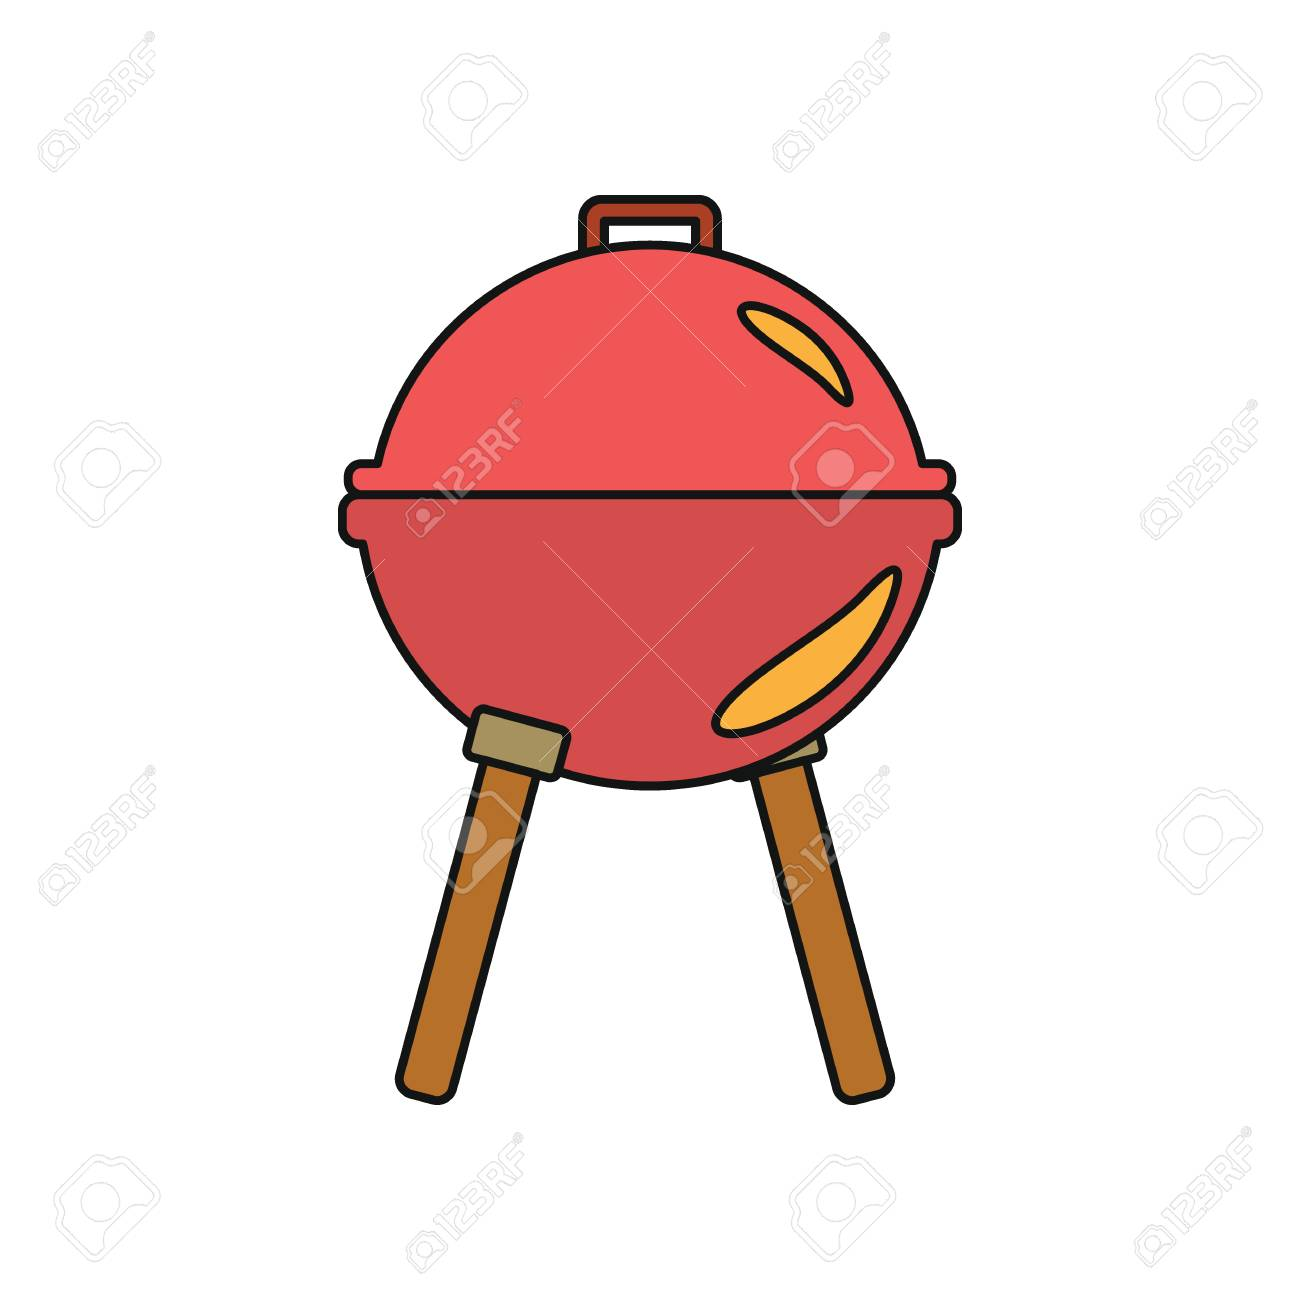 1300x1300 Metal Grill Barbecue Cartoon Icon. Vector Illustration Of Grill